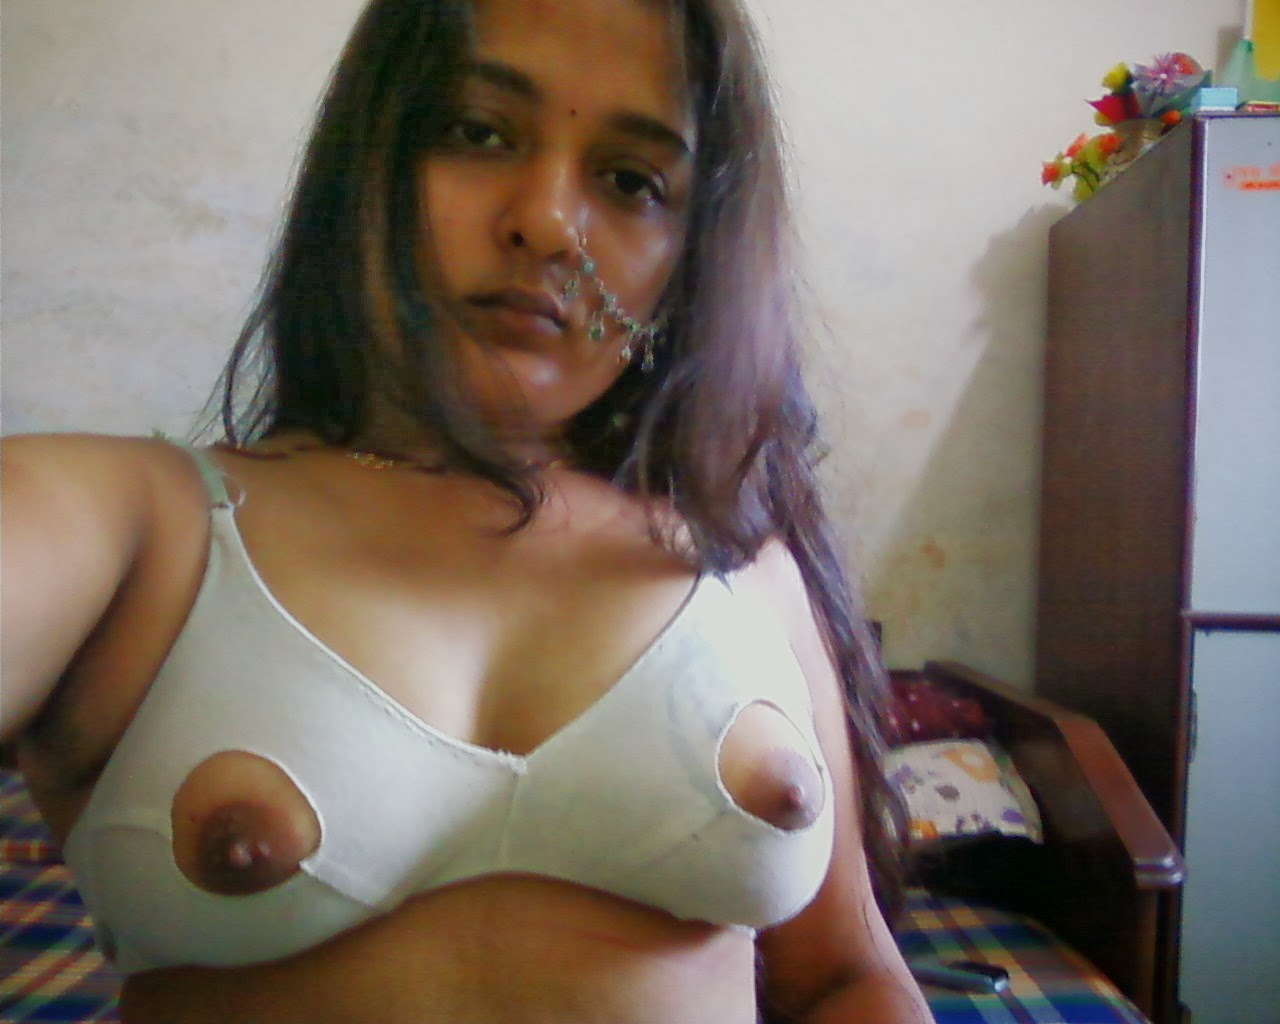 Nude above sixty years old desi bhabhis with big boobs of punjab